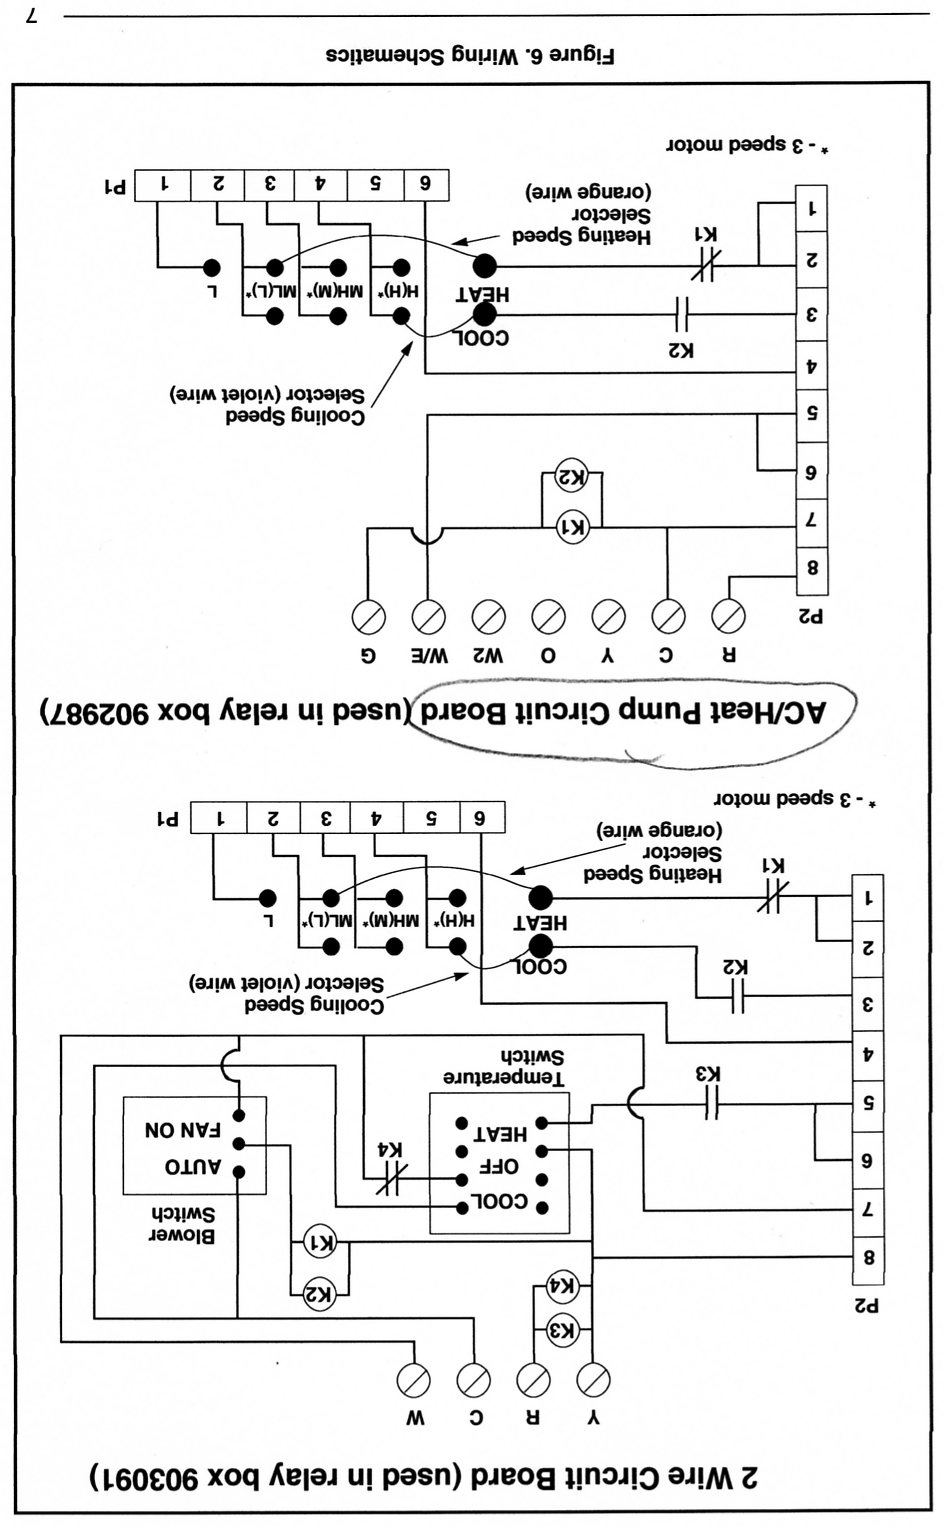 [ZHKZ_3066]  DIAGRAM] Q3rd 030k Nordyne Heat Pump Wiring Diagram FULL Version HD Quality Wiring  Diagram - DIAGRAMEX.UNICEFFLAUBERT.FR | Nordyne Heat Pump Wiring Diagram |  | Unicef Flaubert